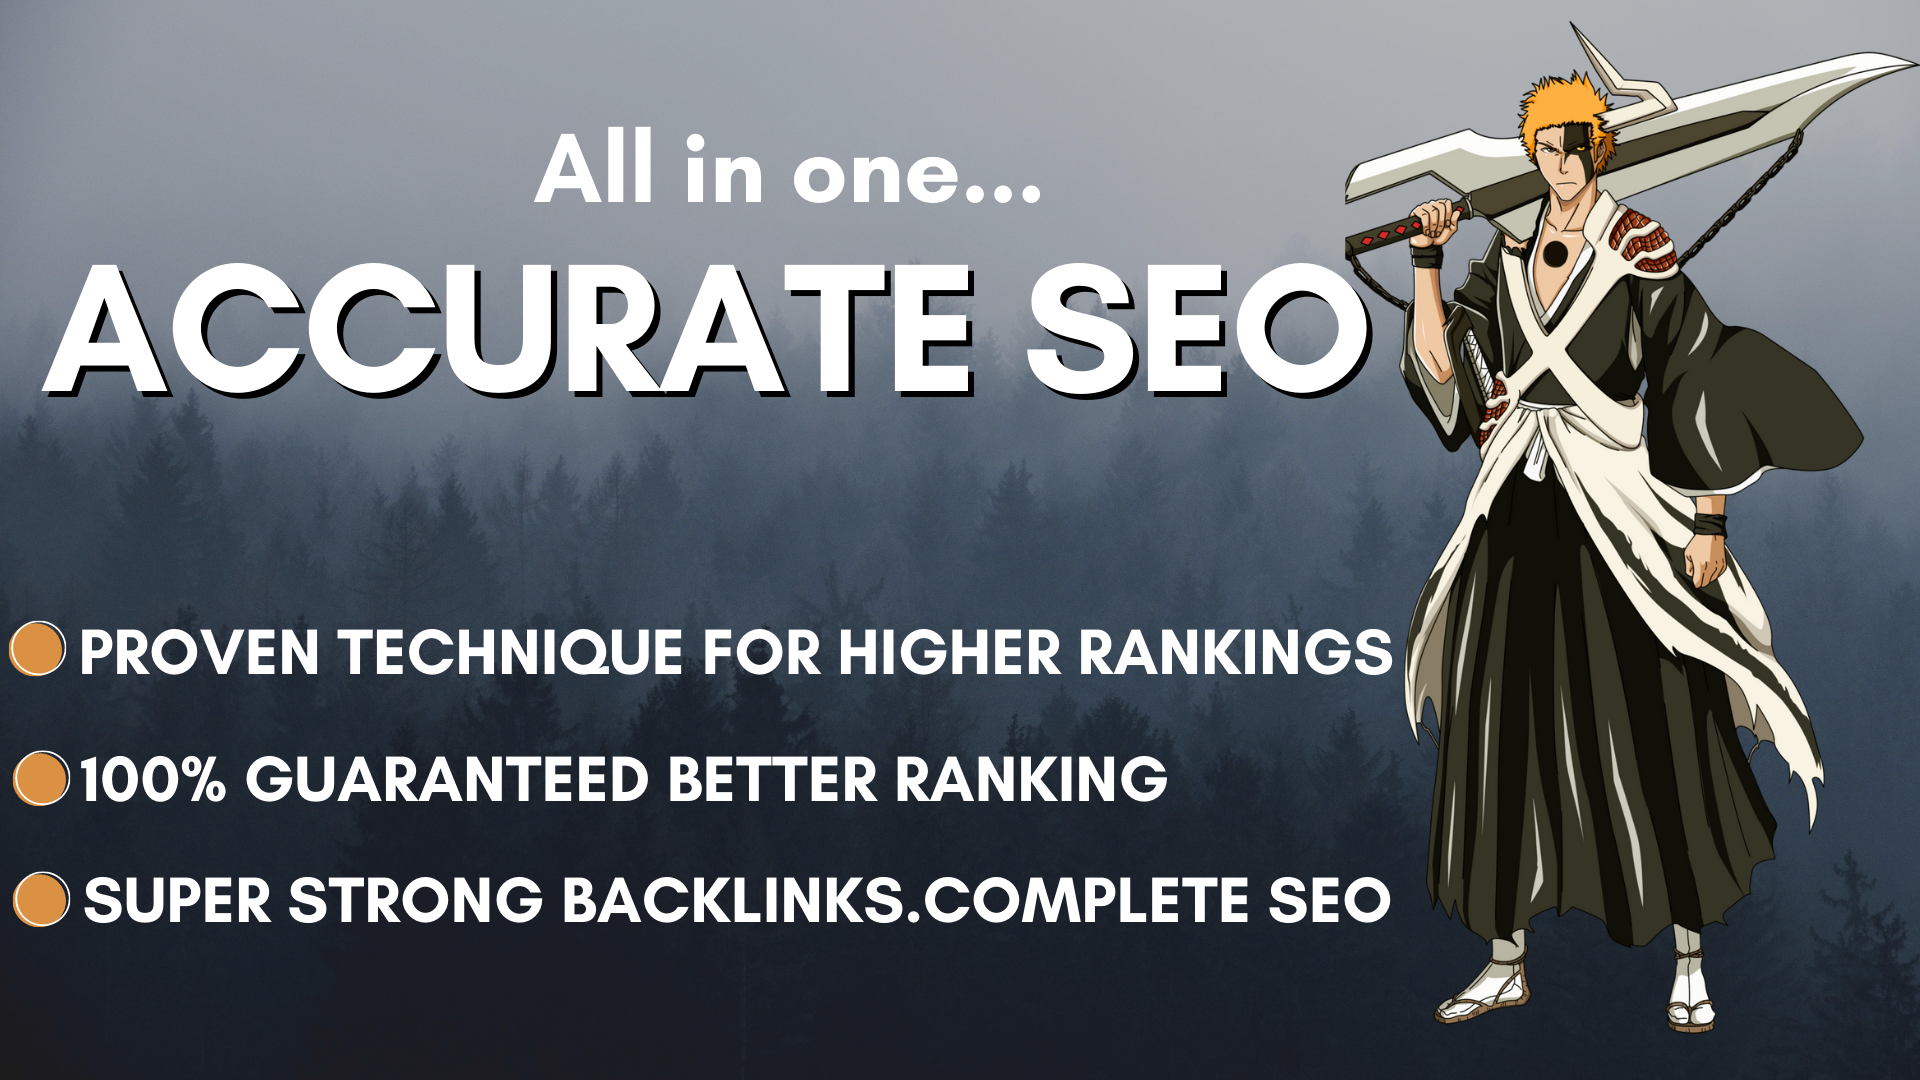 With Ultimate strategy from All in One manual Links by Accurate SEO